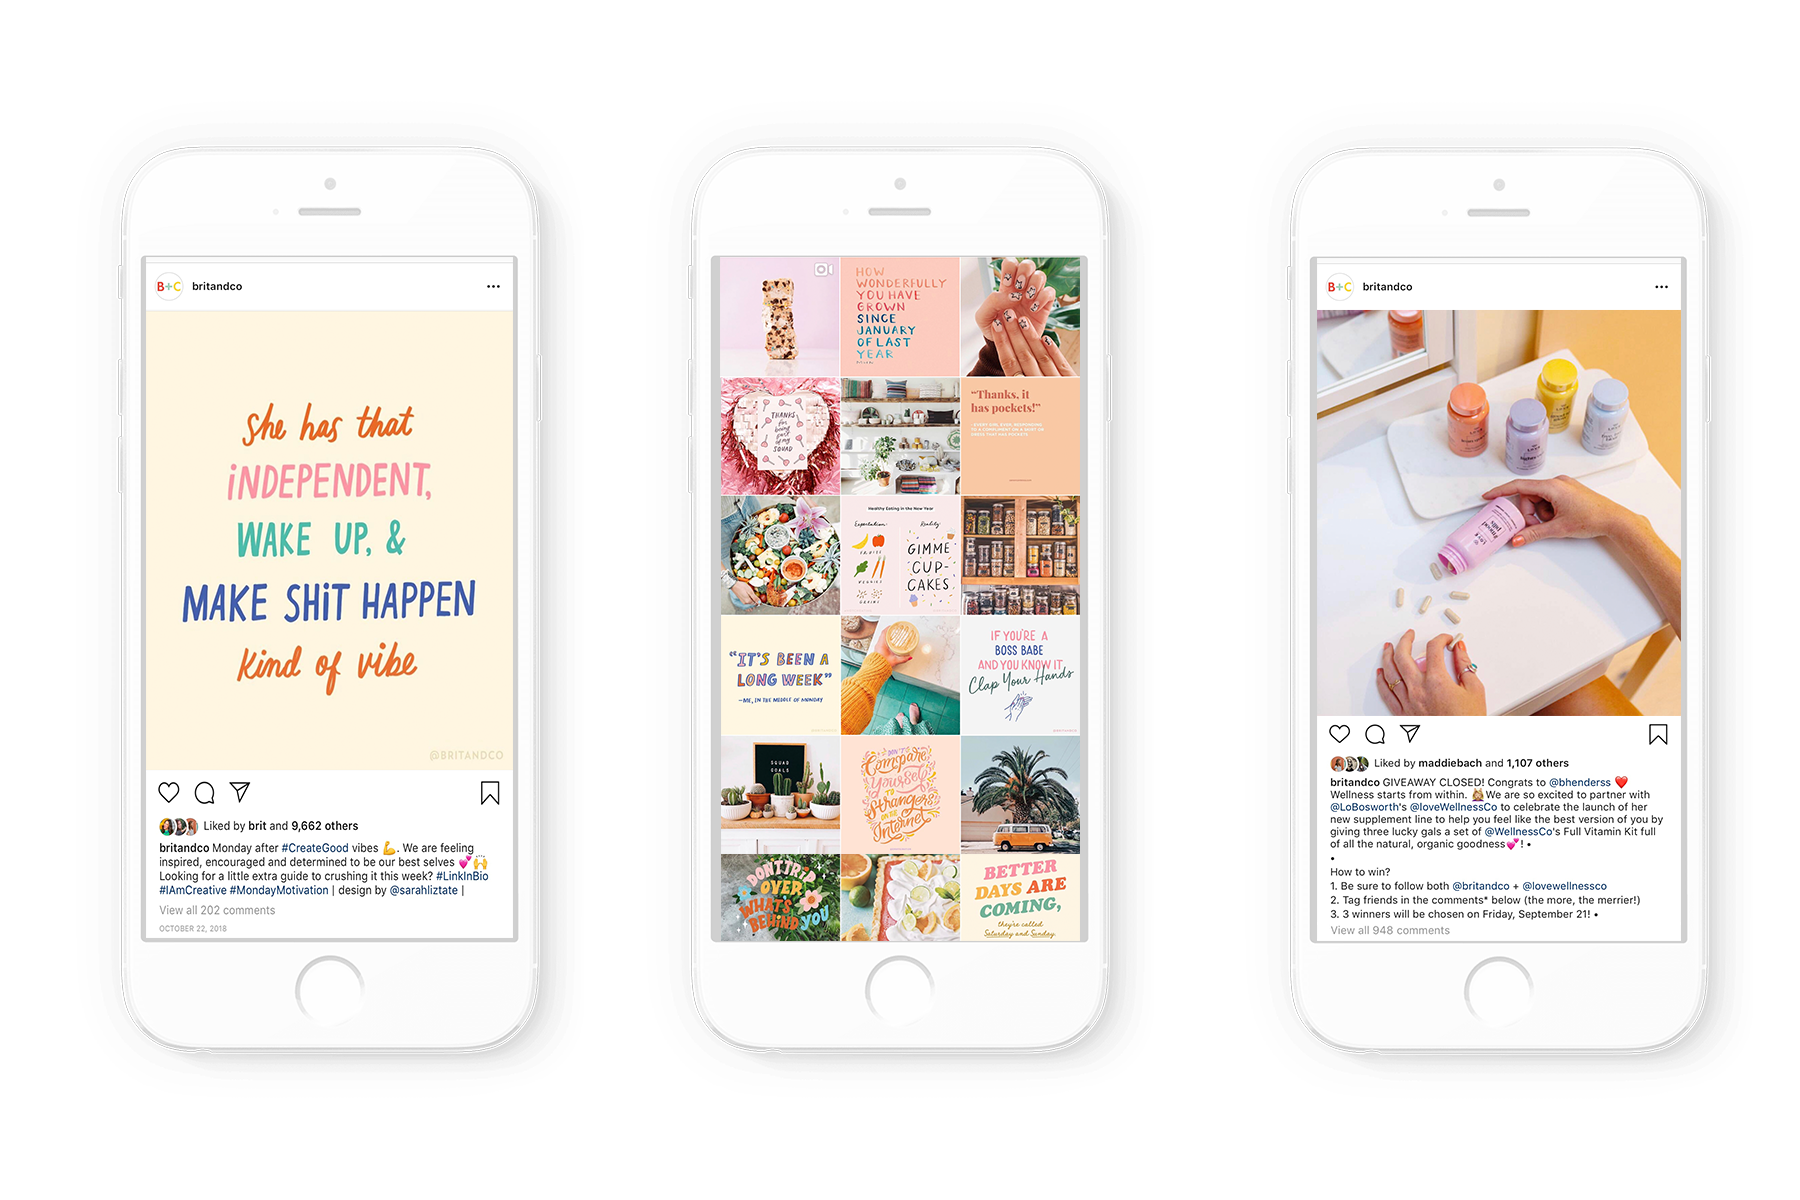 1 . Top performing Instagram asset for Brit + Co ideated by Kara and created by design team.   2 . Brit + Co Instagram feed curated, edited, and designed by Kara   3 . Giveaway with @LoBosworth and @LoveWellnessCo that was successful in cross-promotion and brand awareness